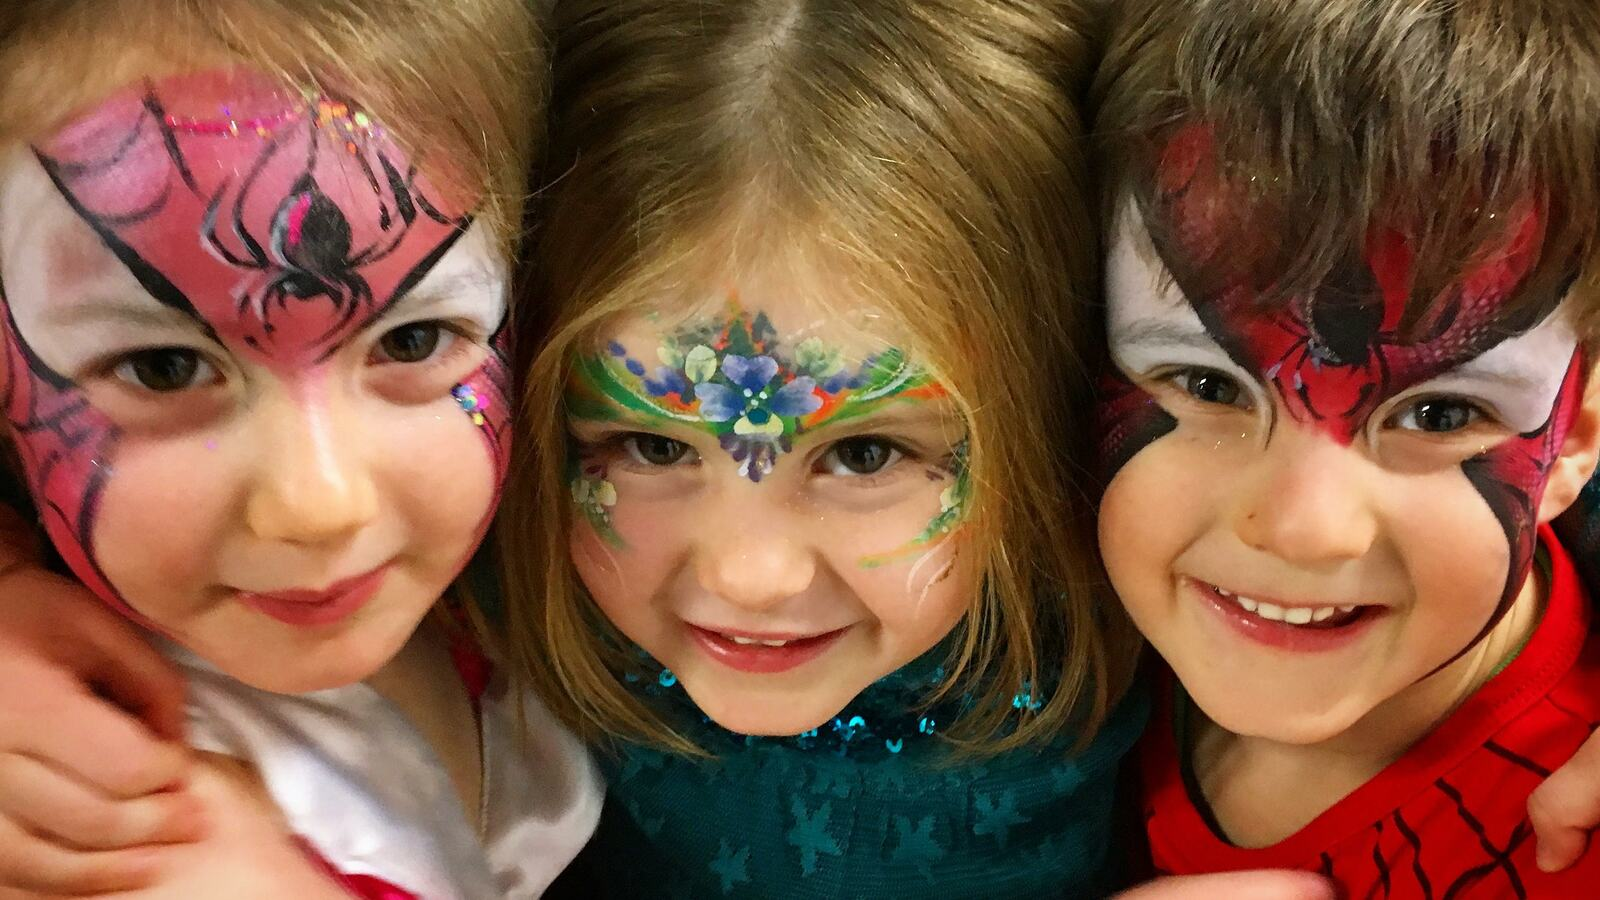 Children with facepaint